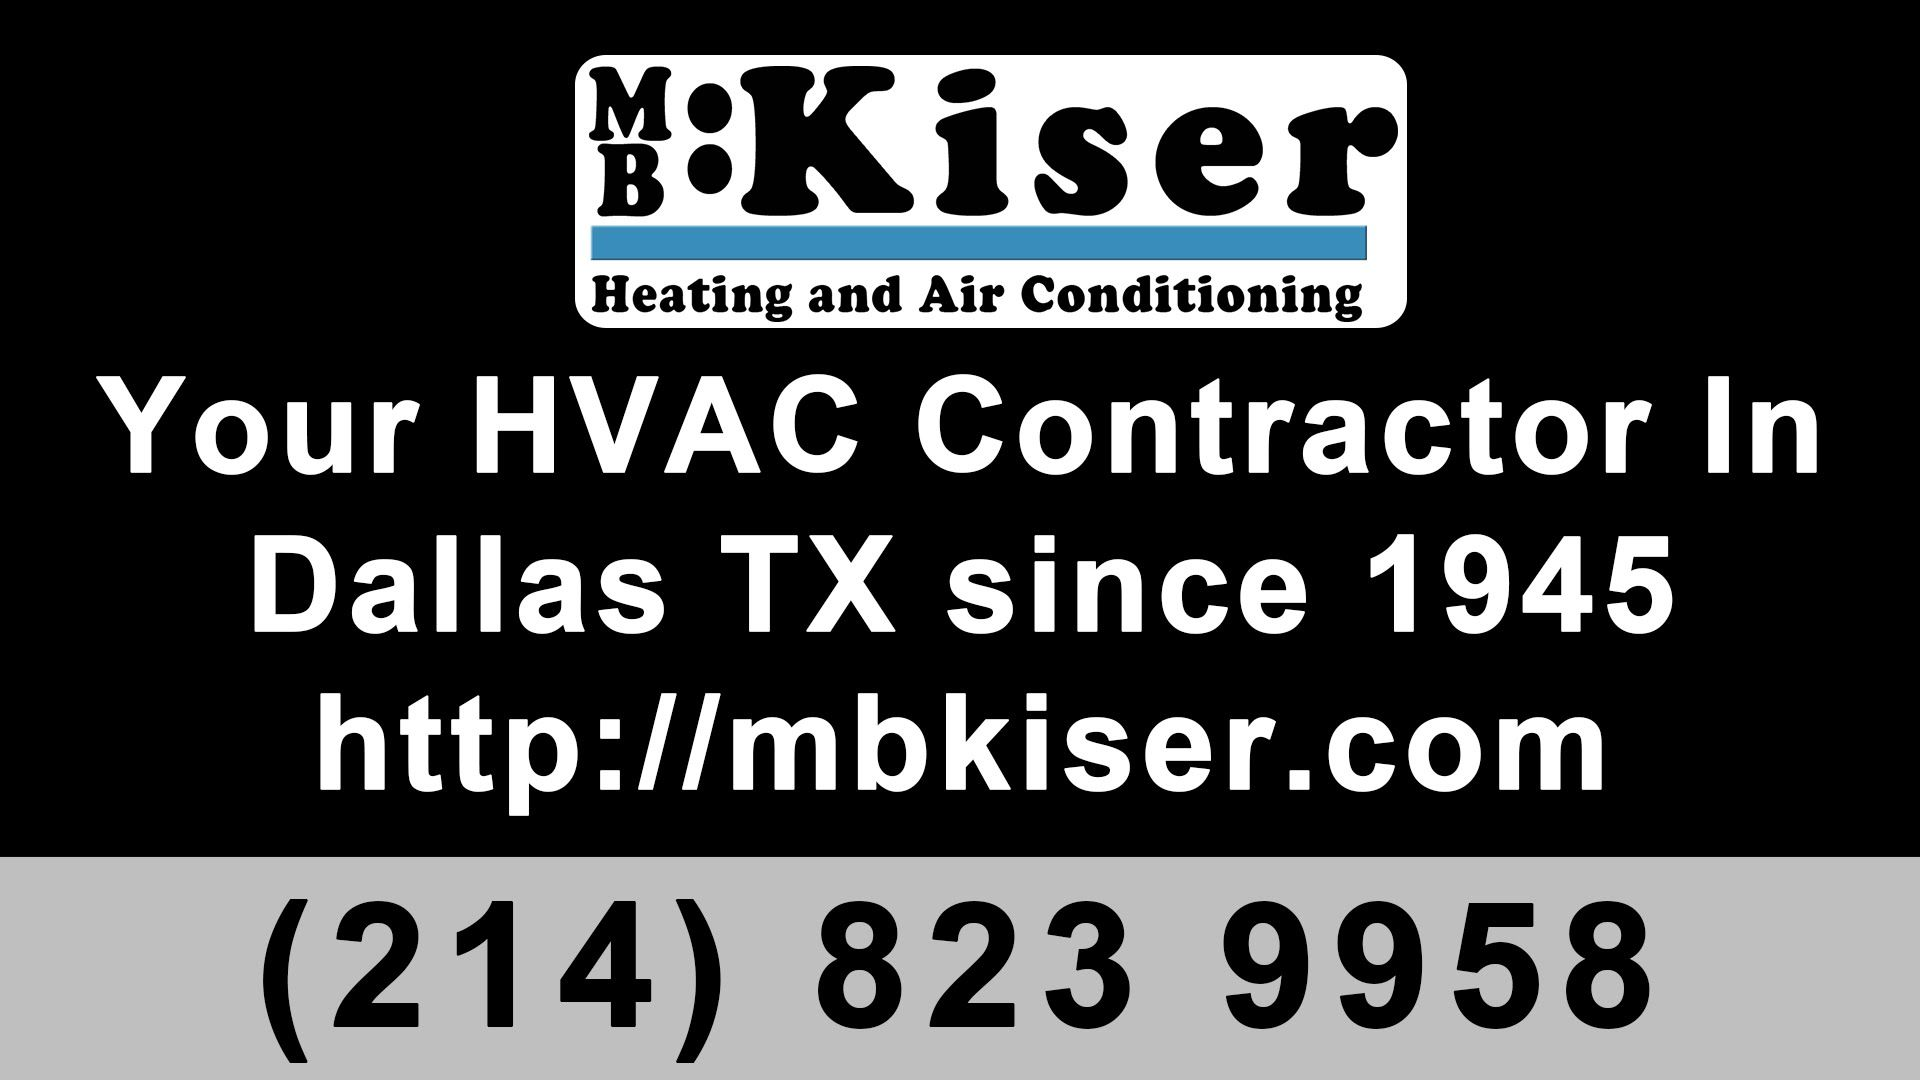 Pin by M. B. Kiser Heating & Air Conditioning Co. Inc. on